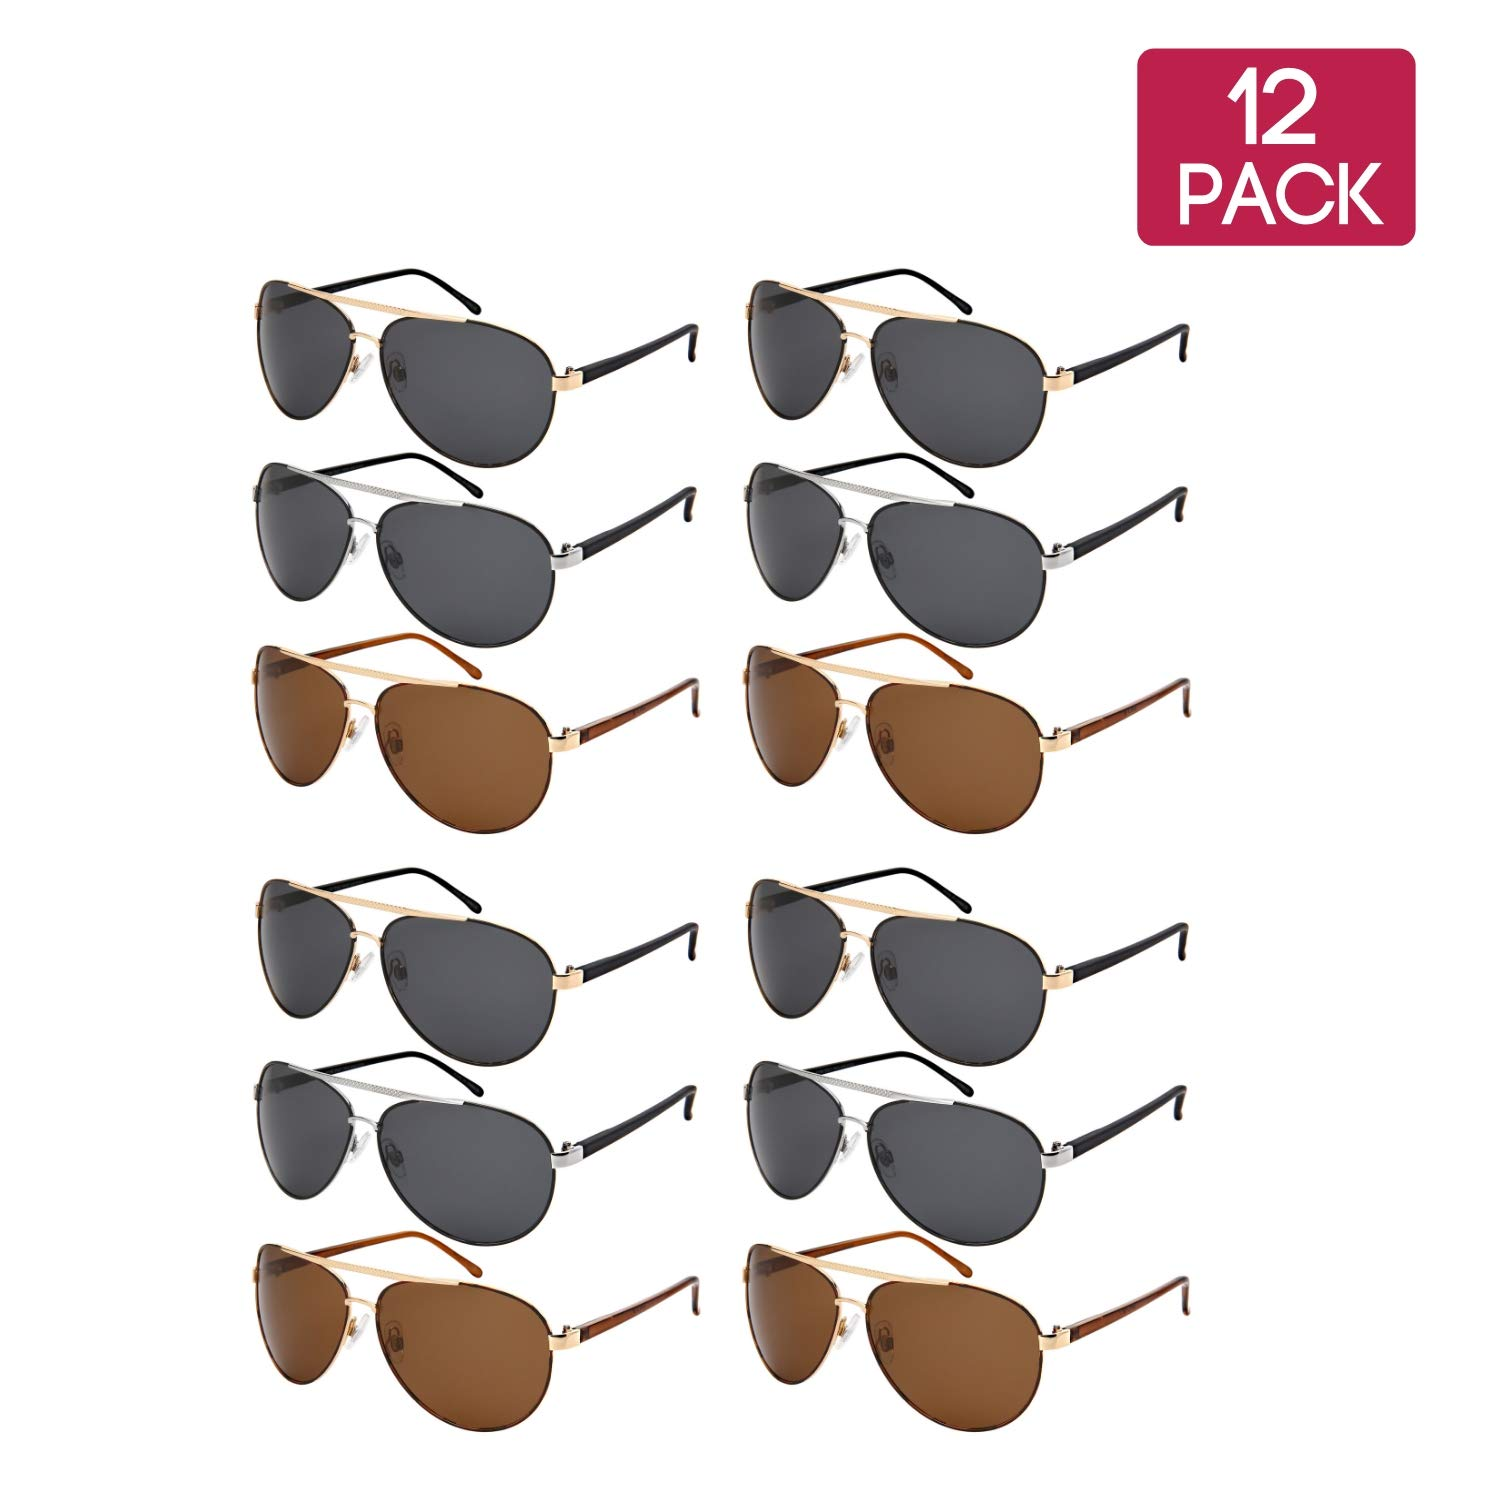 4gold Grey _4silver Grey_4gold Brown Edge IWear 12 Pack Classic Bulk Wholesale Polarized Metal Aviator Sunglasses for Men Women UV400